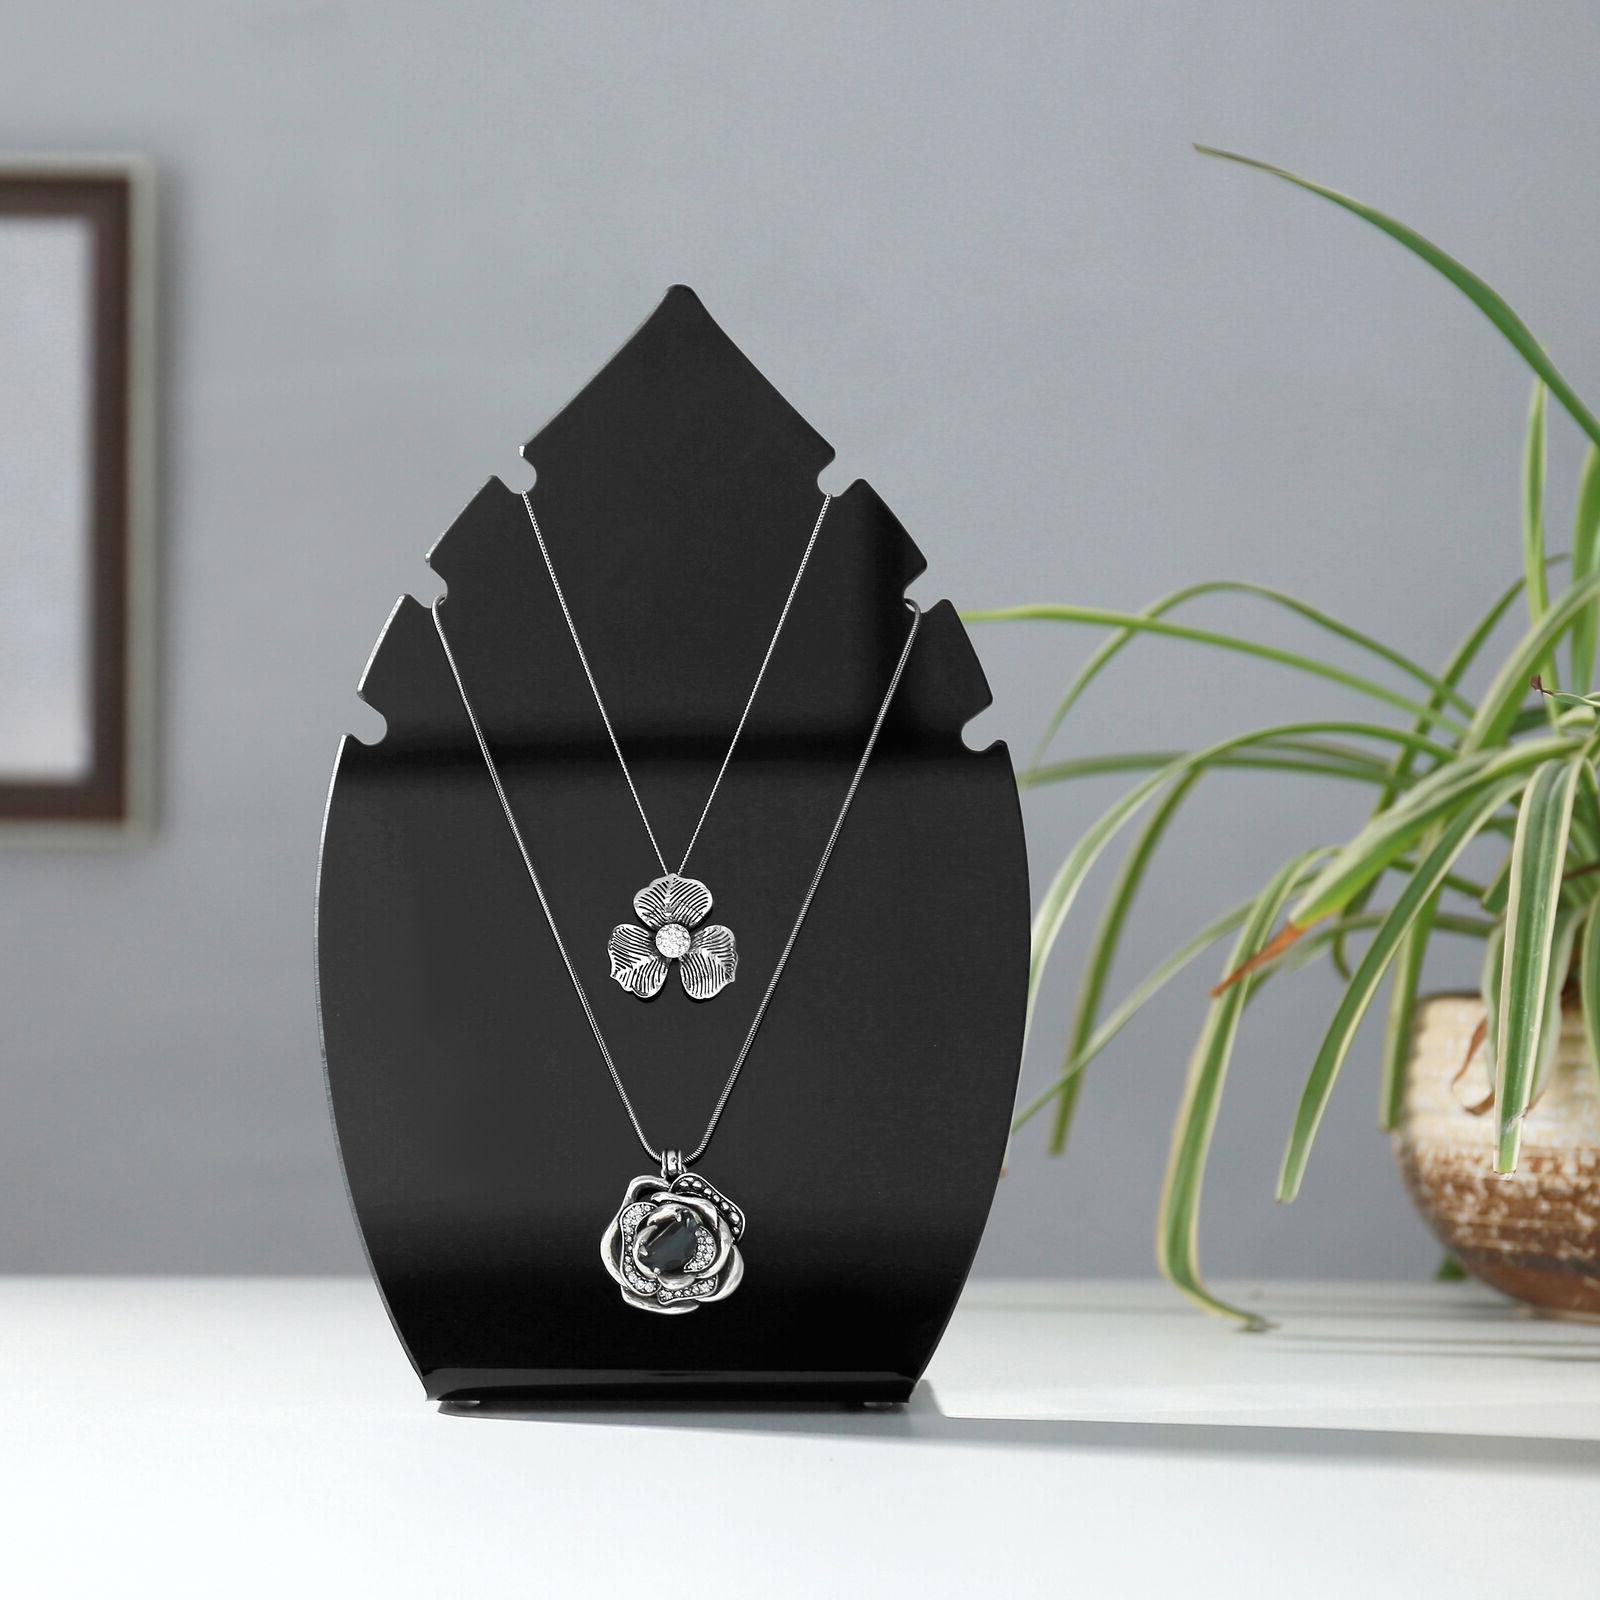 MyGift 10-Inch Leaf-Shaped Acrylic Necklace Stand